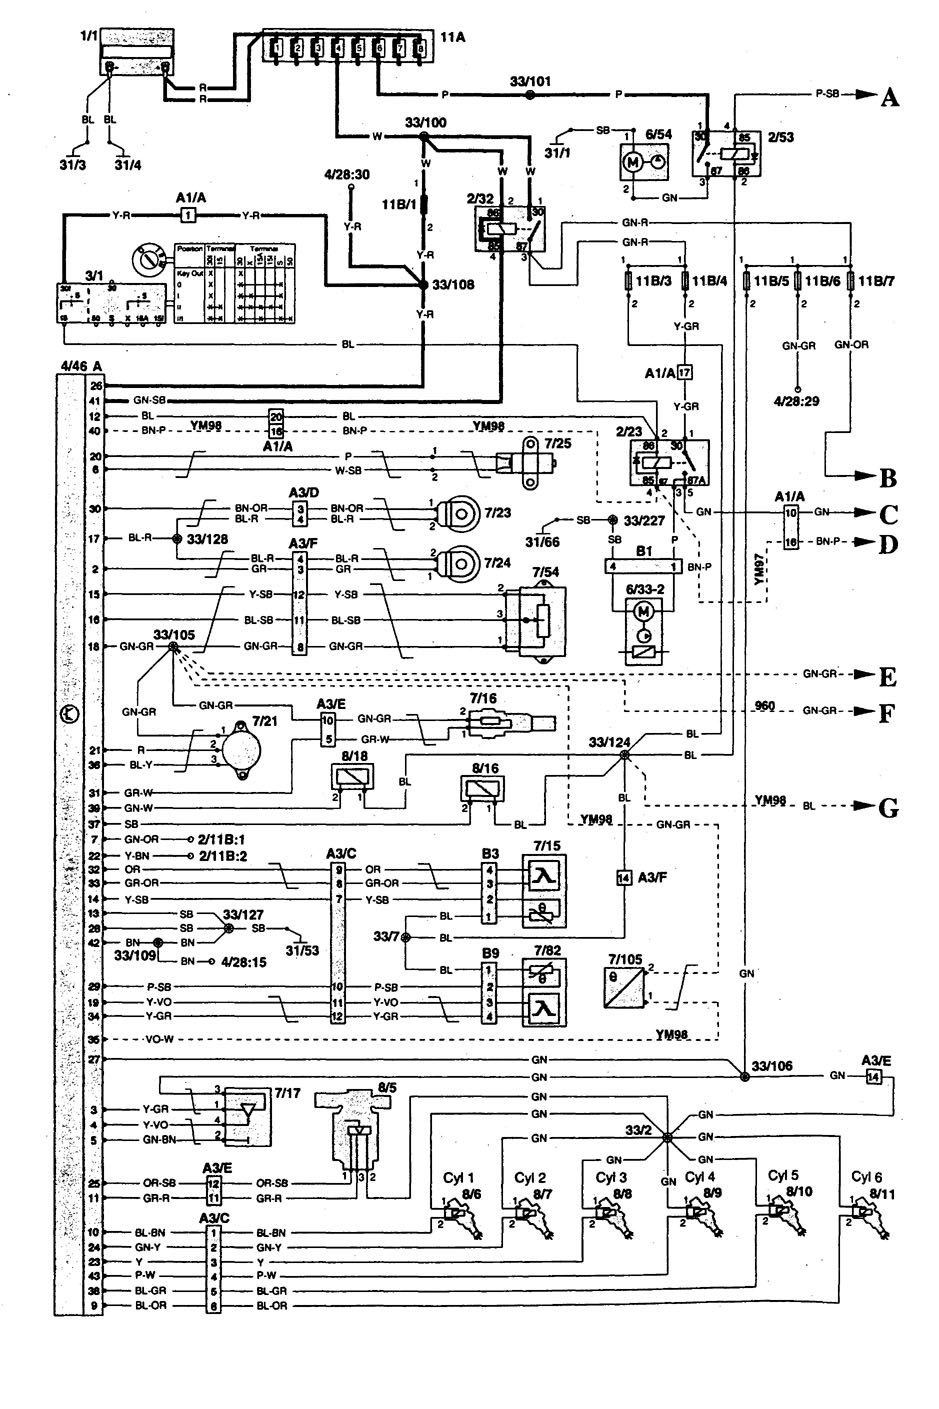 1995 Volvo 940 Wiring Diagram 960 Electrical System And 1992 Simple Diagram1995 Engine